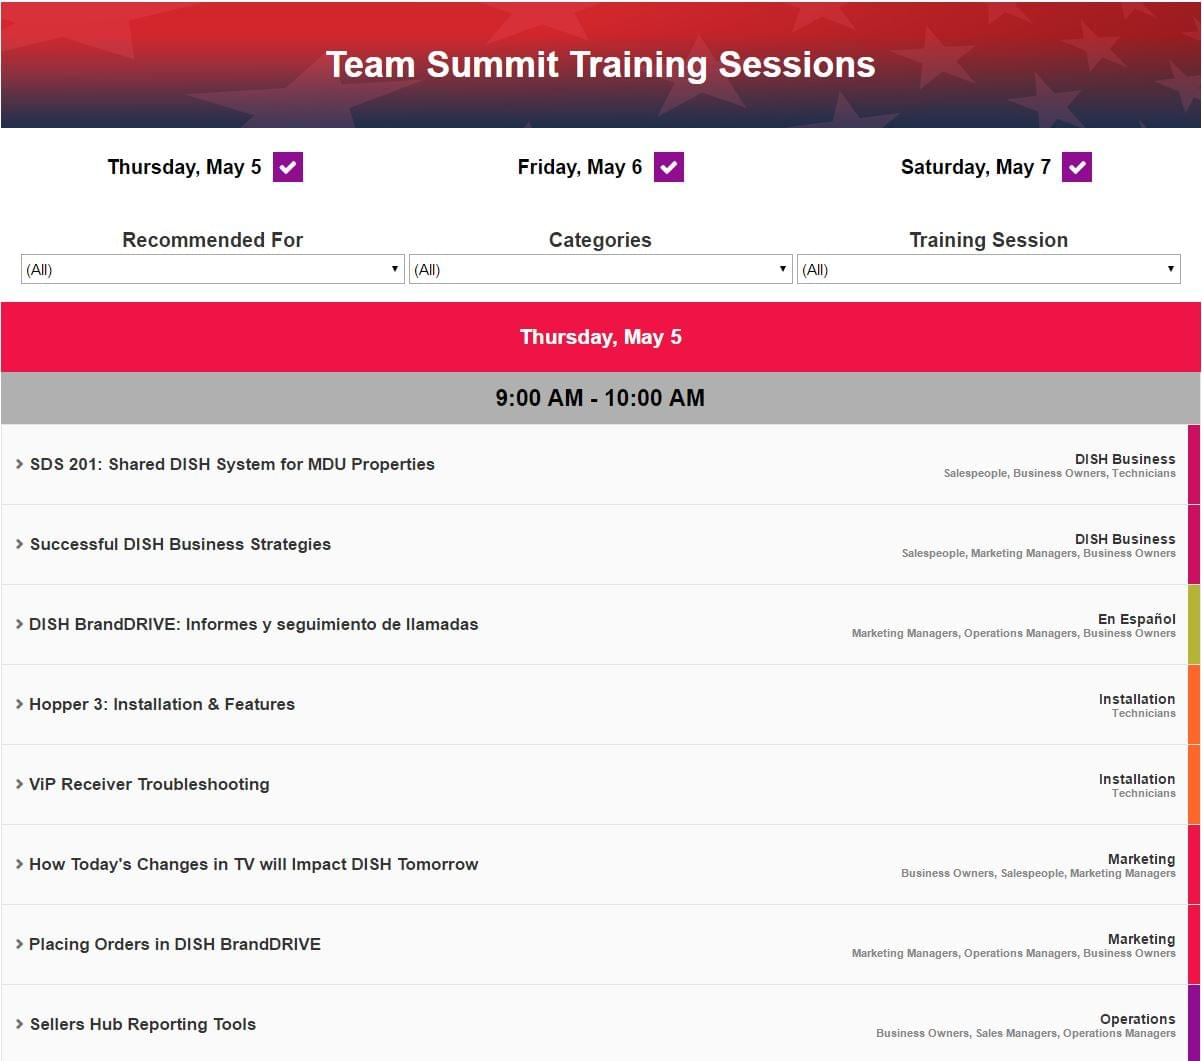 Screenshot of the filterable team summit schedule